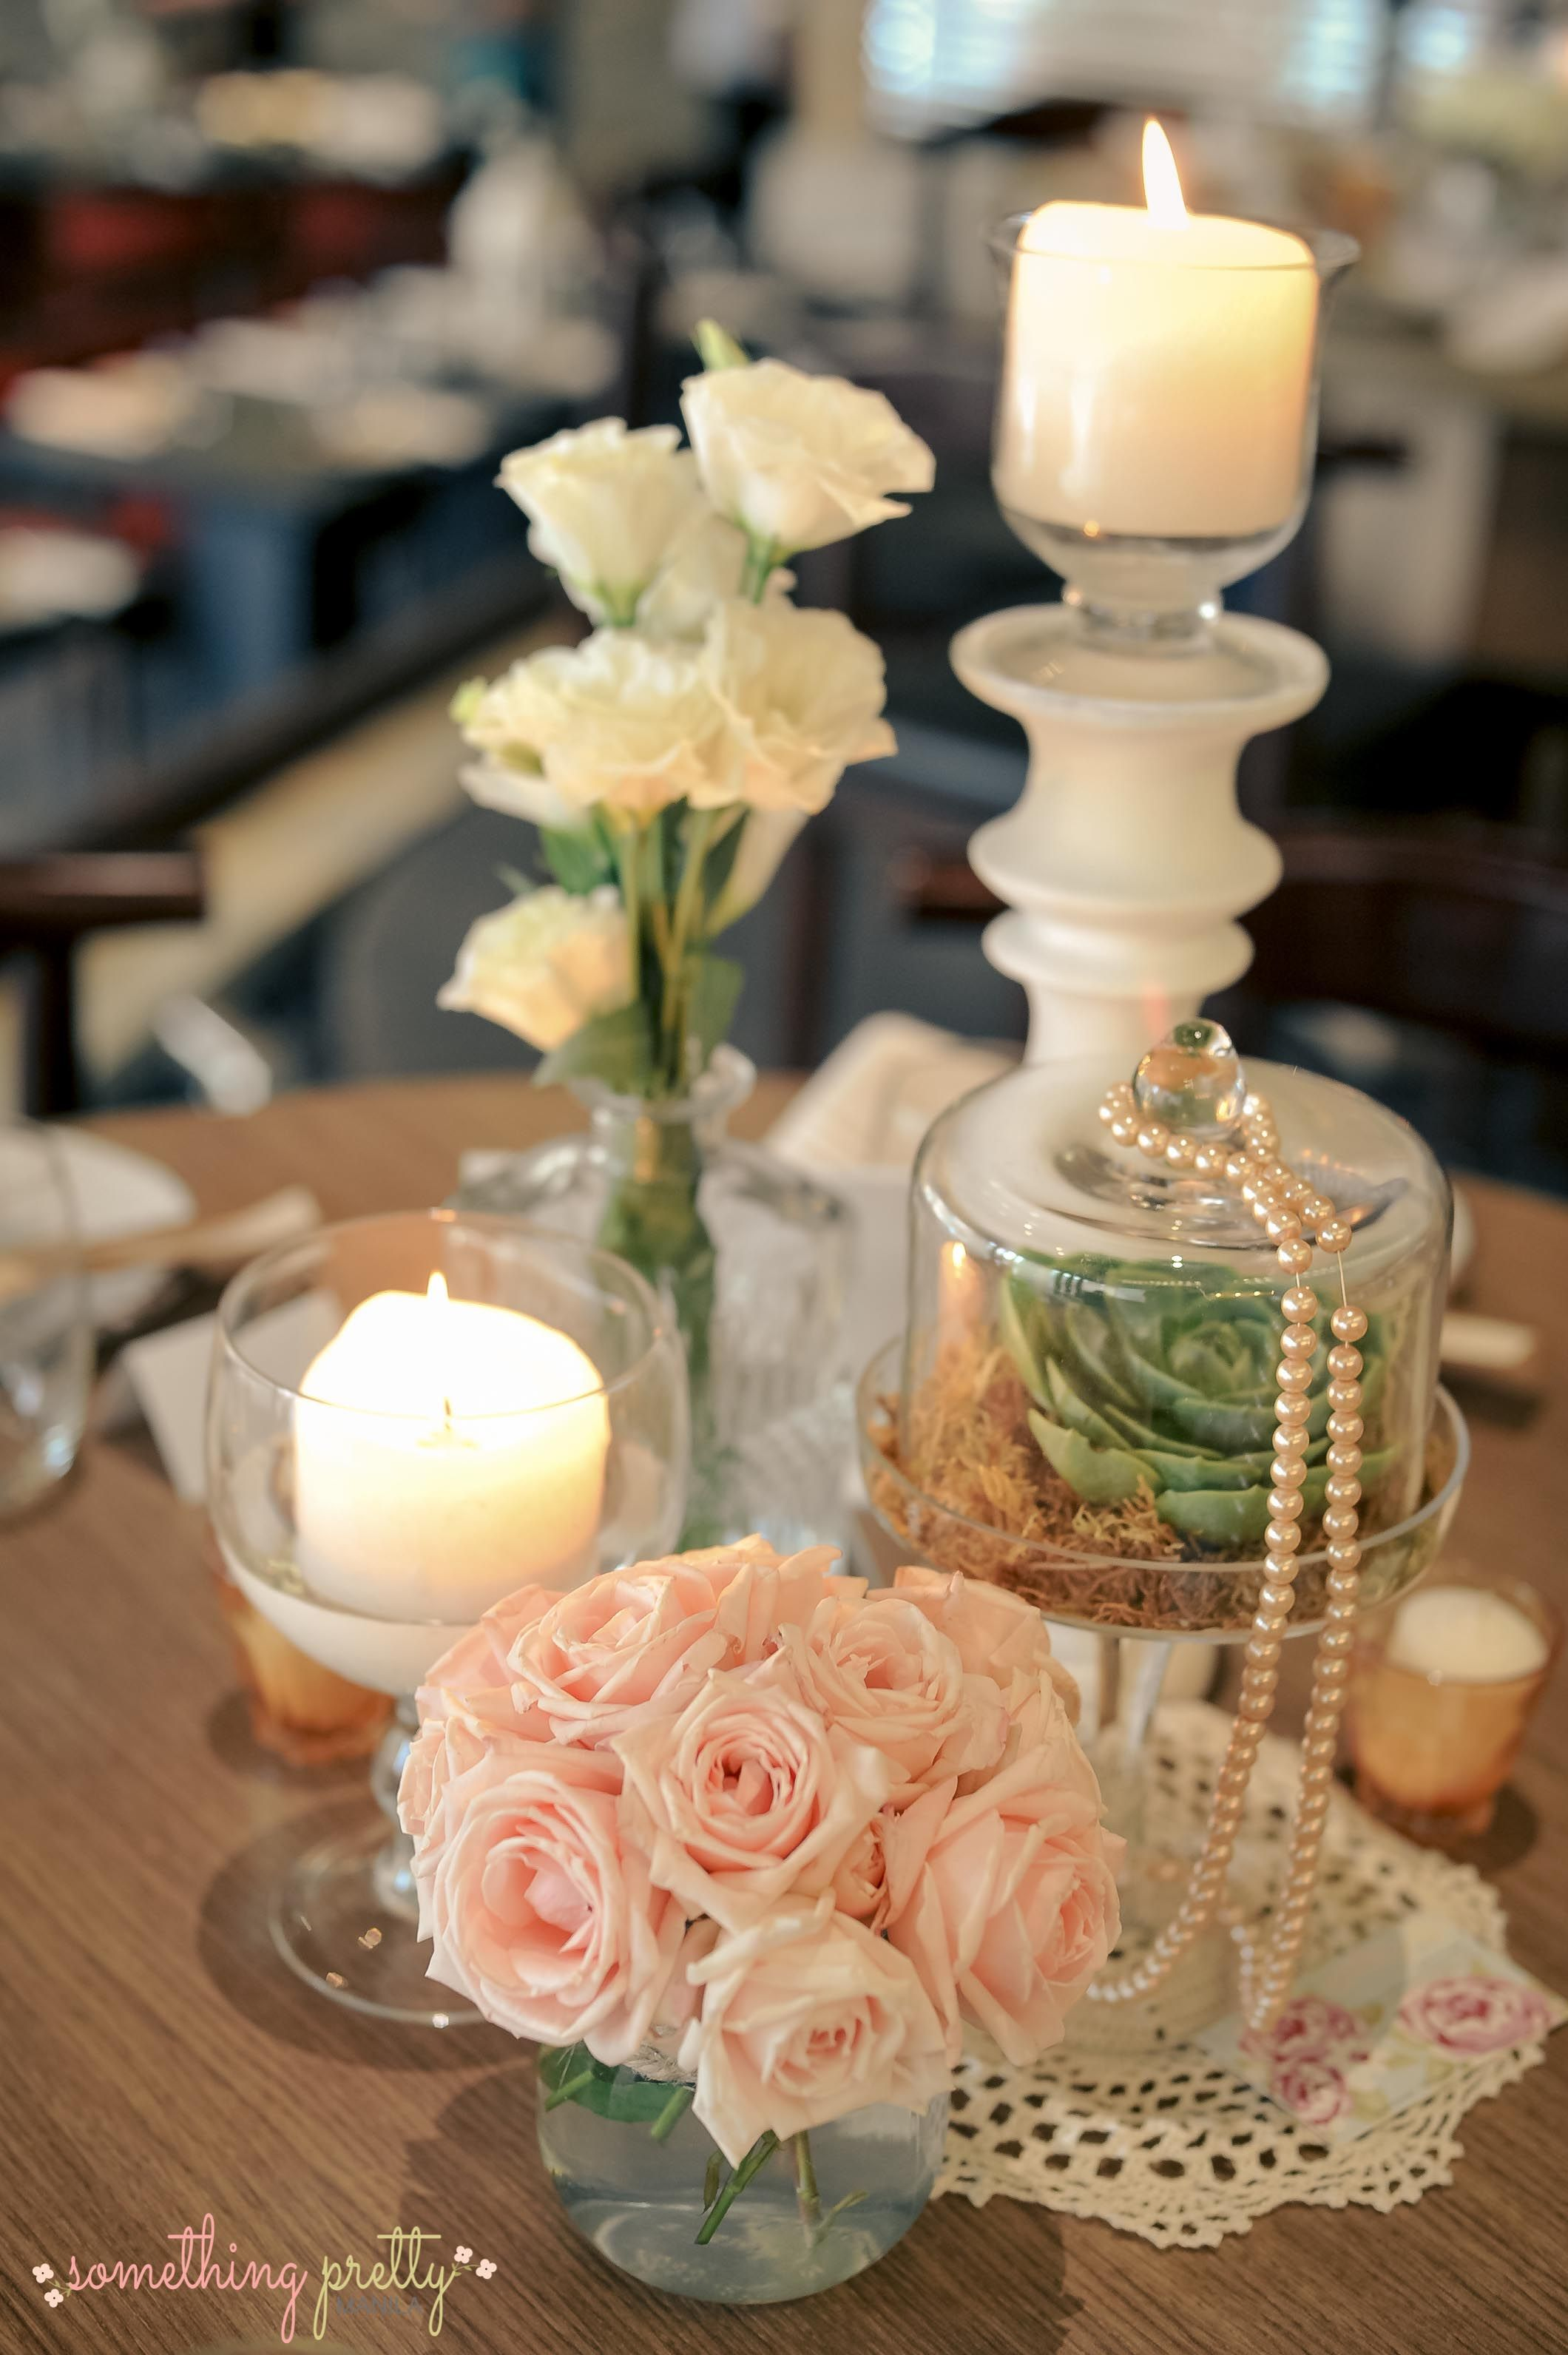 Table Centerpiece - Rustic Theme - Event Styling By Something